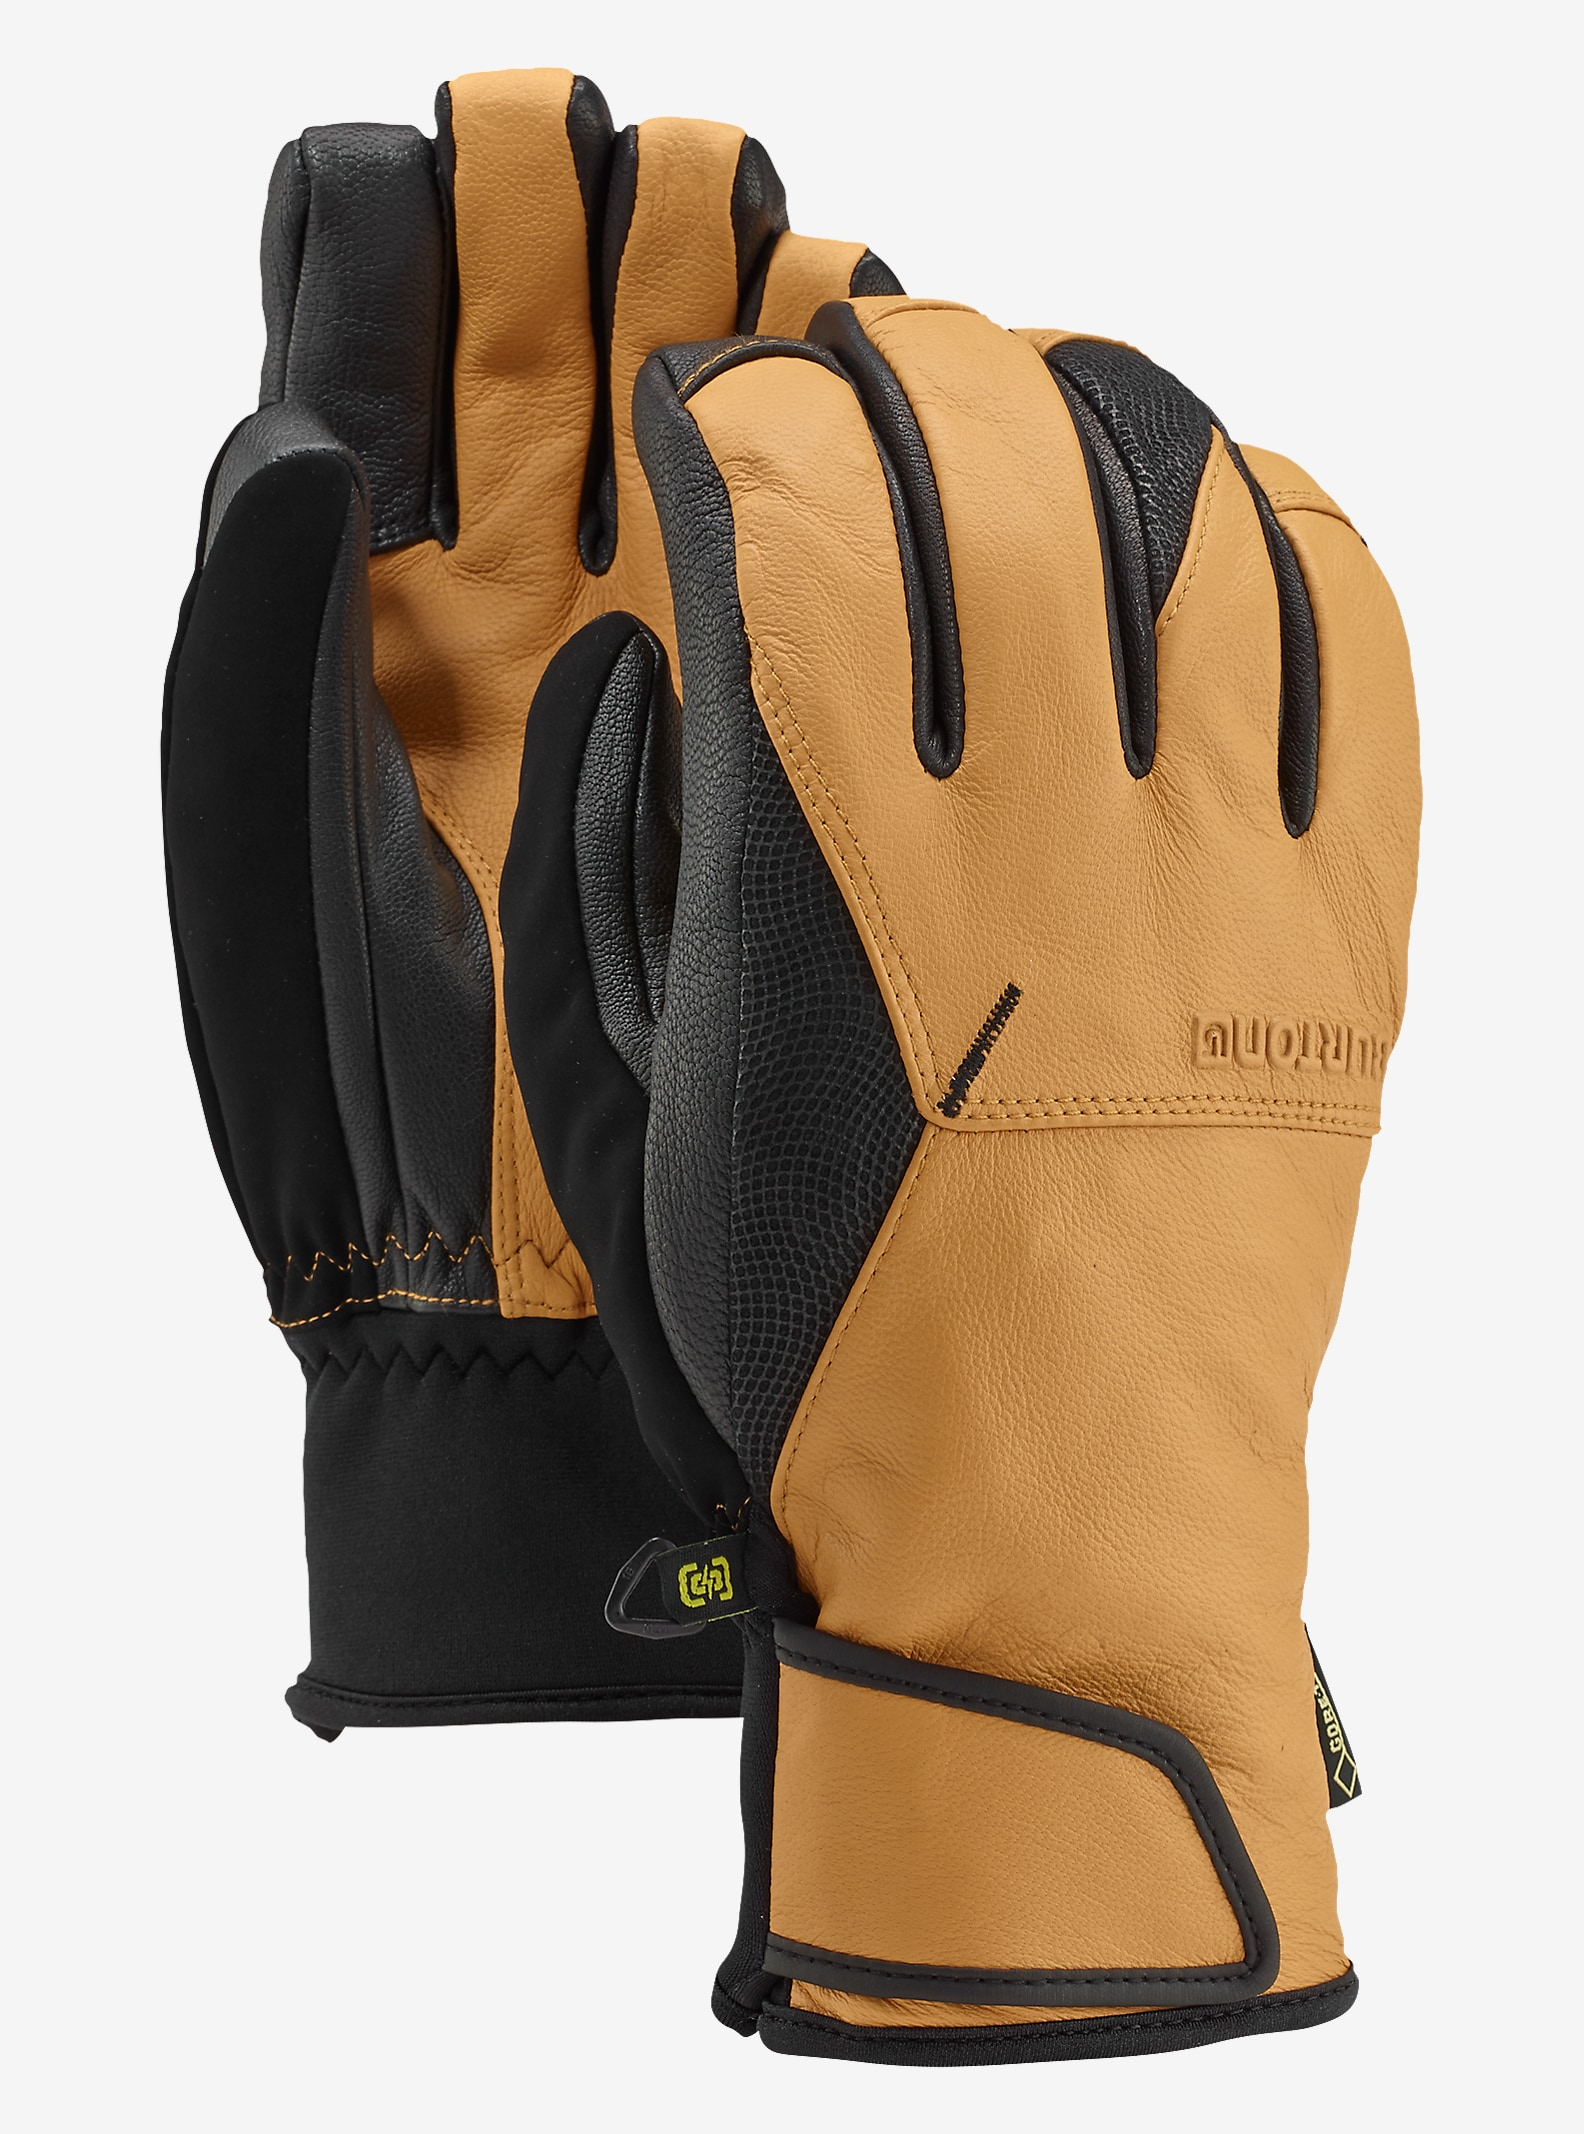 Burton Gondy GORE-TEX® Leather Glove shown in Raw Hide